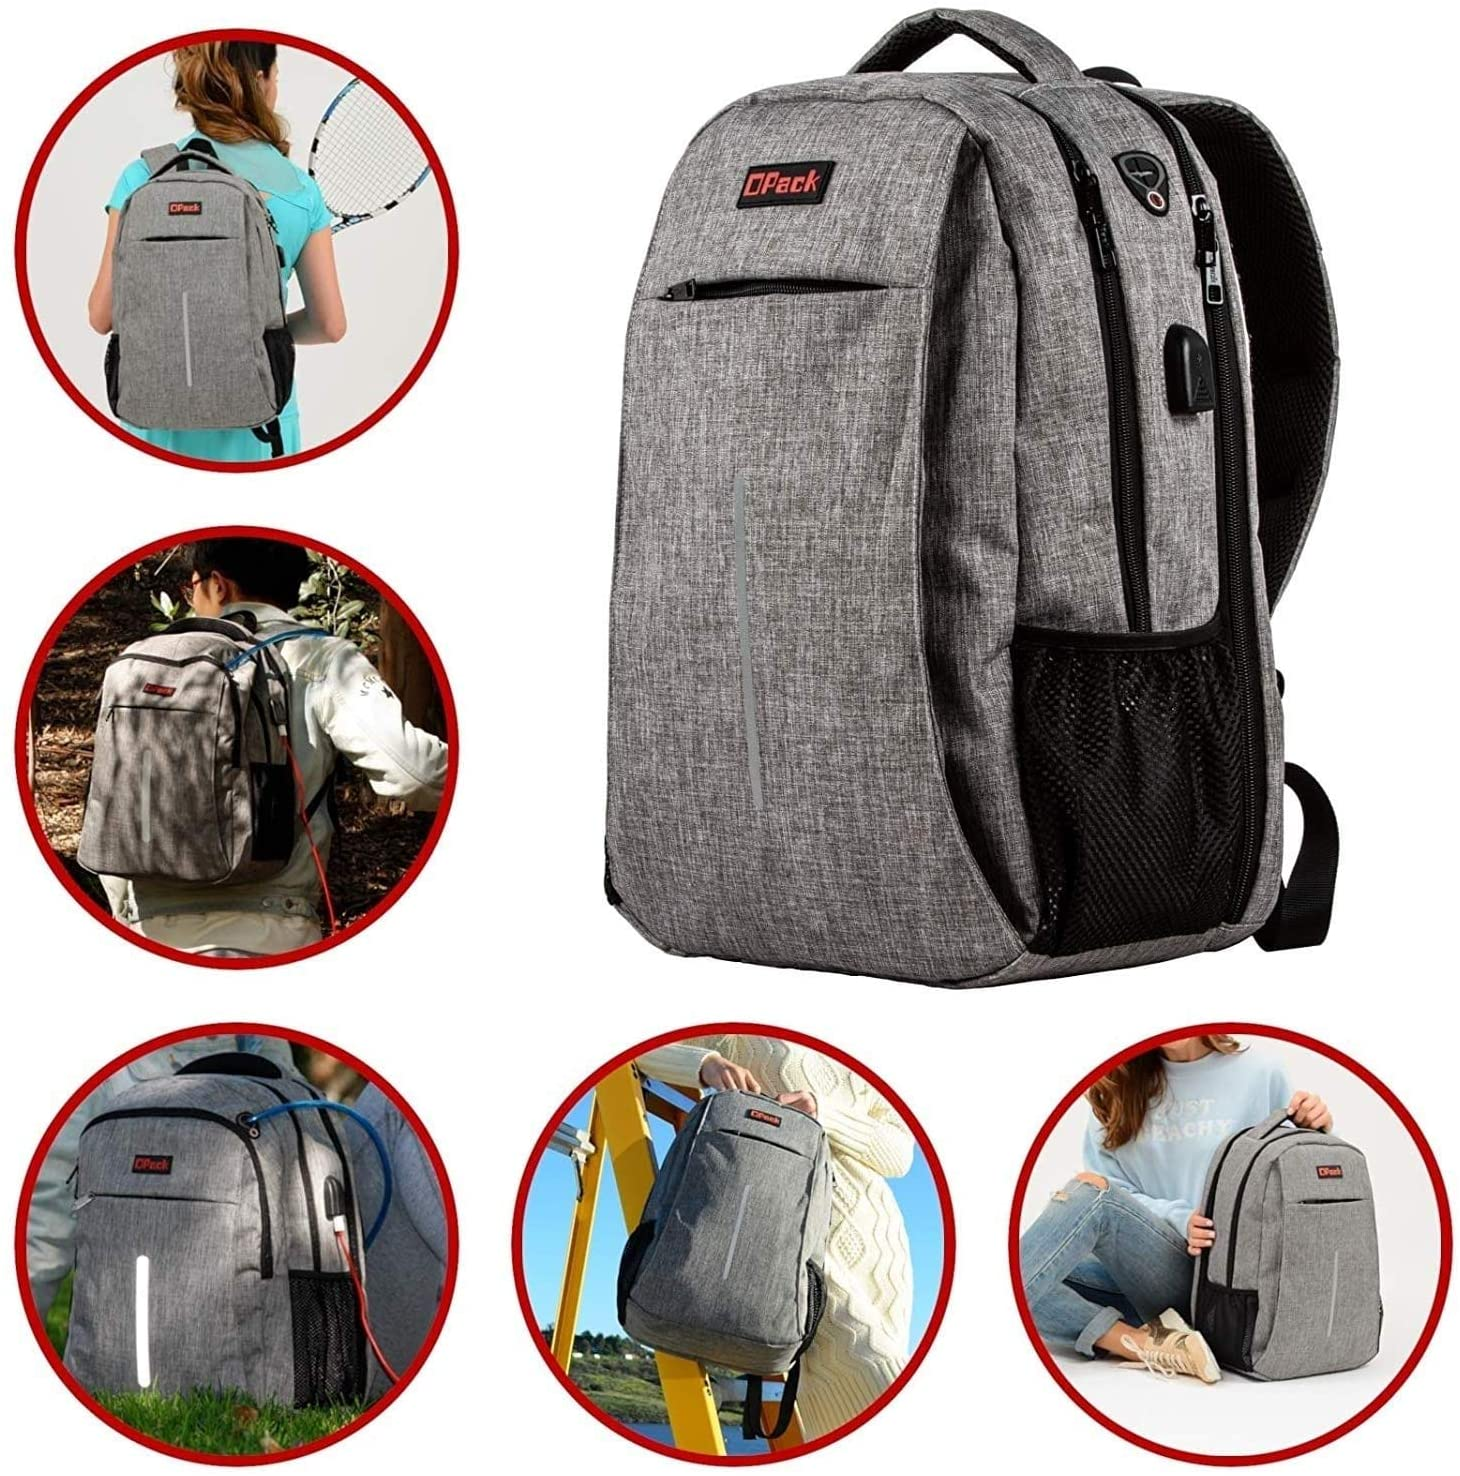 Durable Laptops Backpack USB Charging Port Grey Sports Nylon Checkpoint Friendly Convertible Laptop Compartment